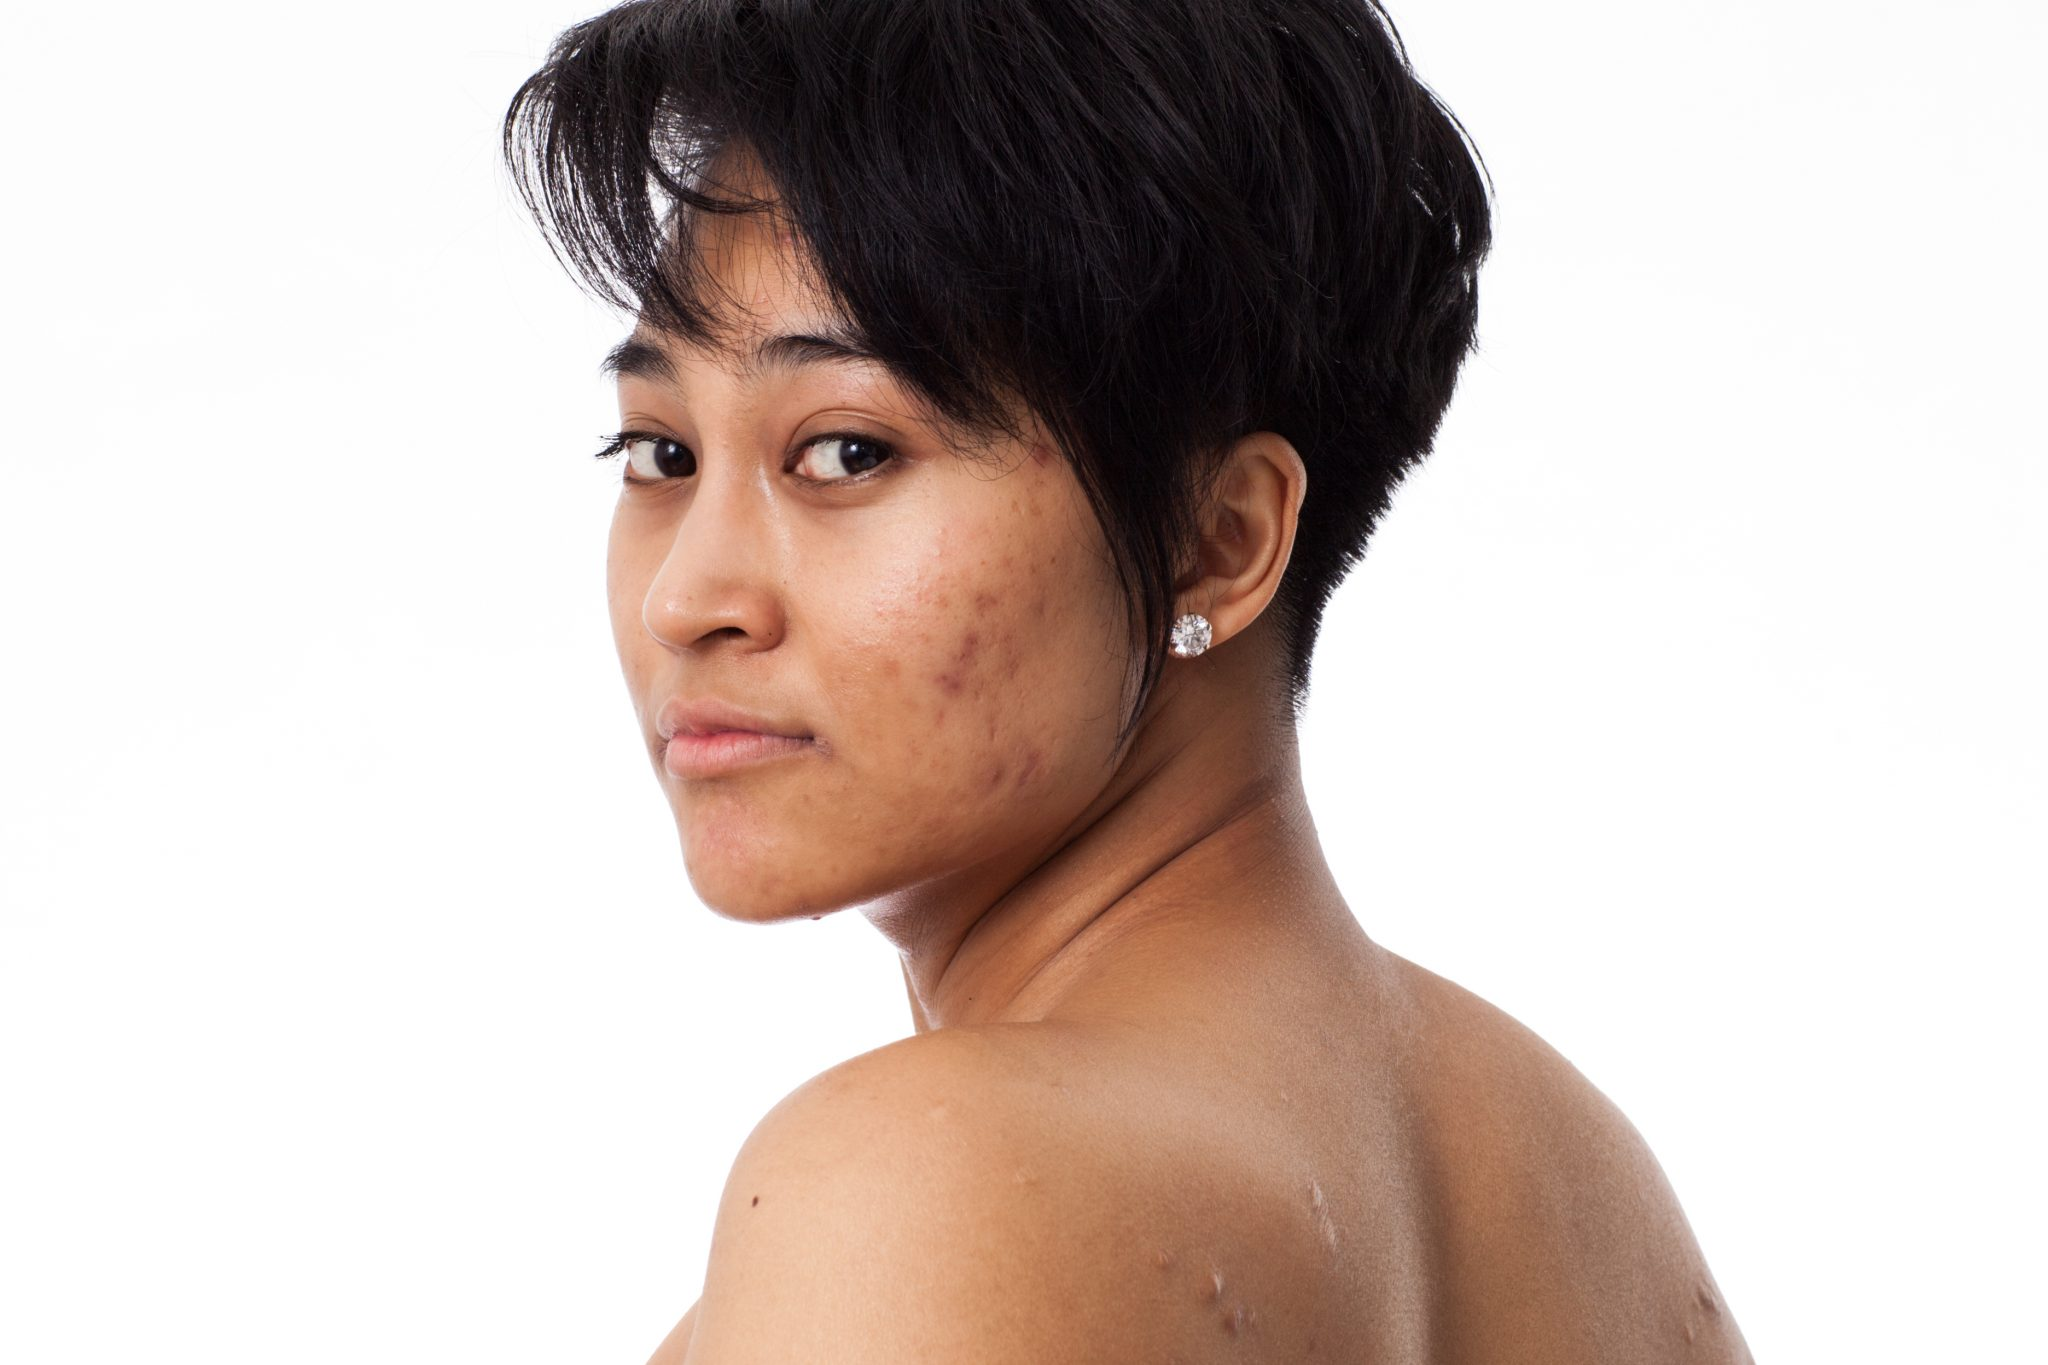 Portrait of young woman with acne and scars